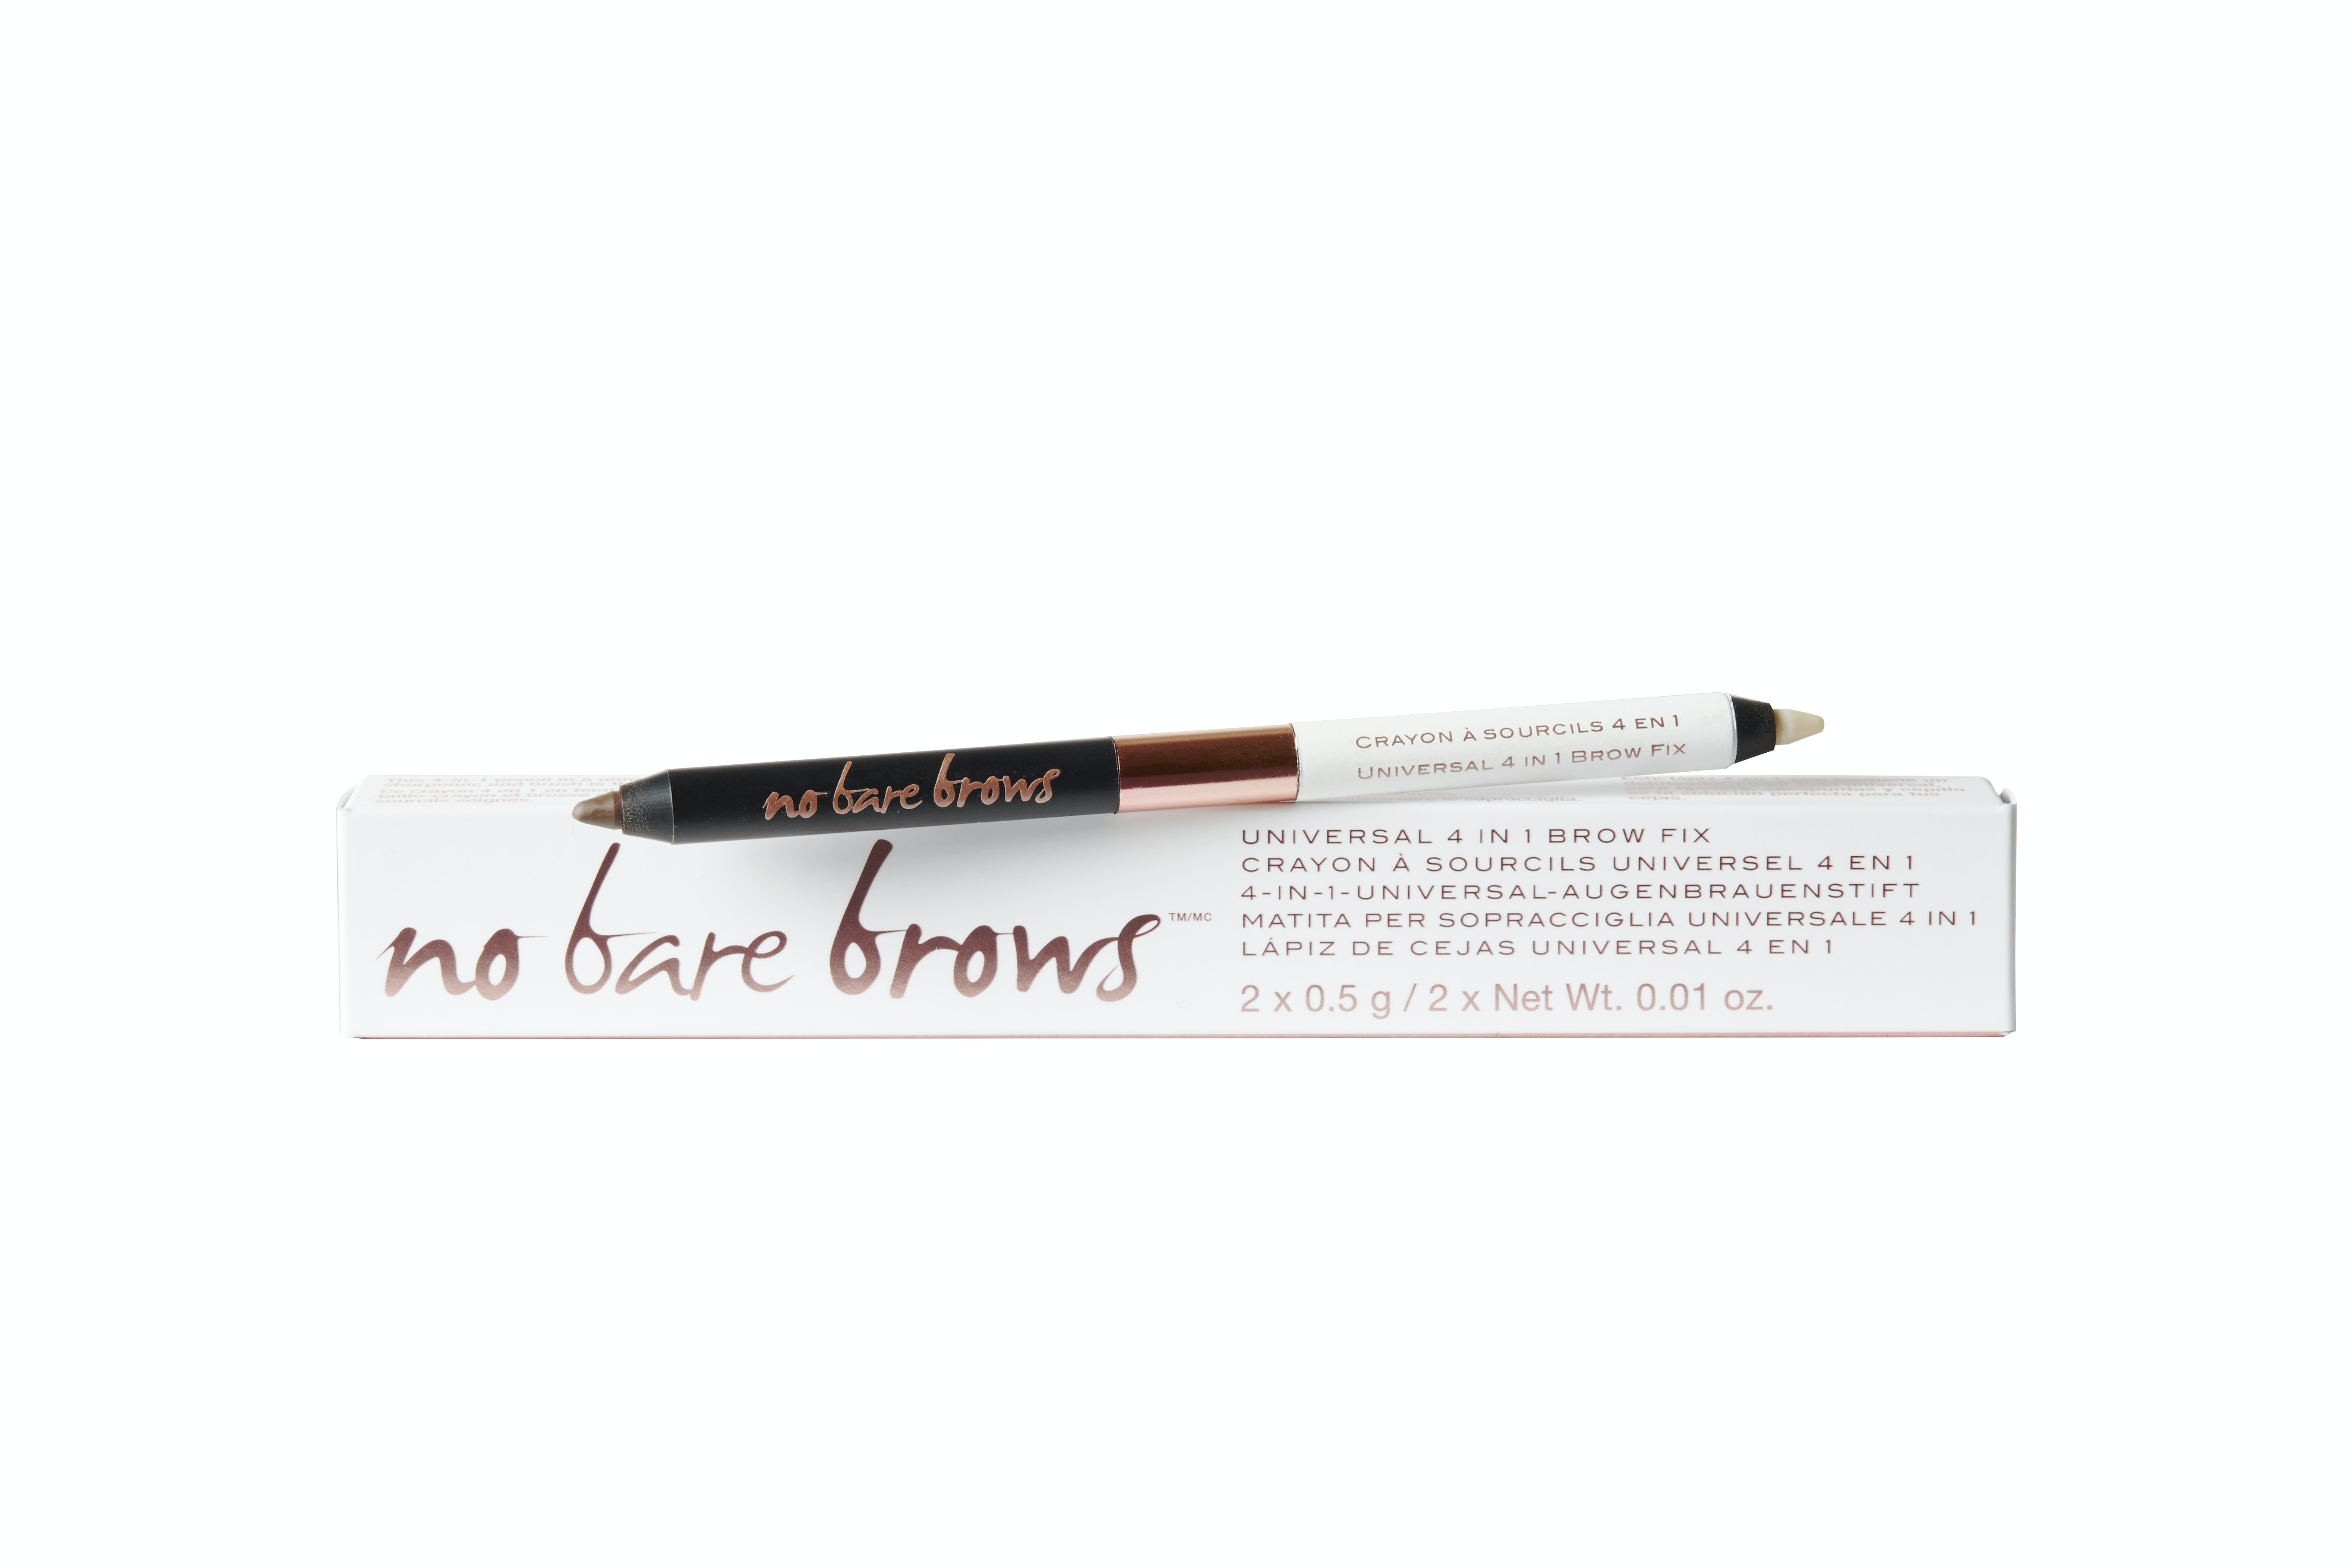 Know cosmetics lip liner, brown pen, lip plumper and concealer  sweepstakes